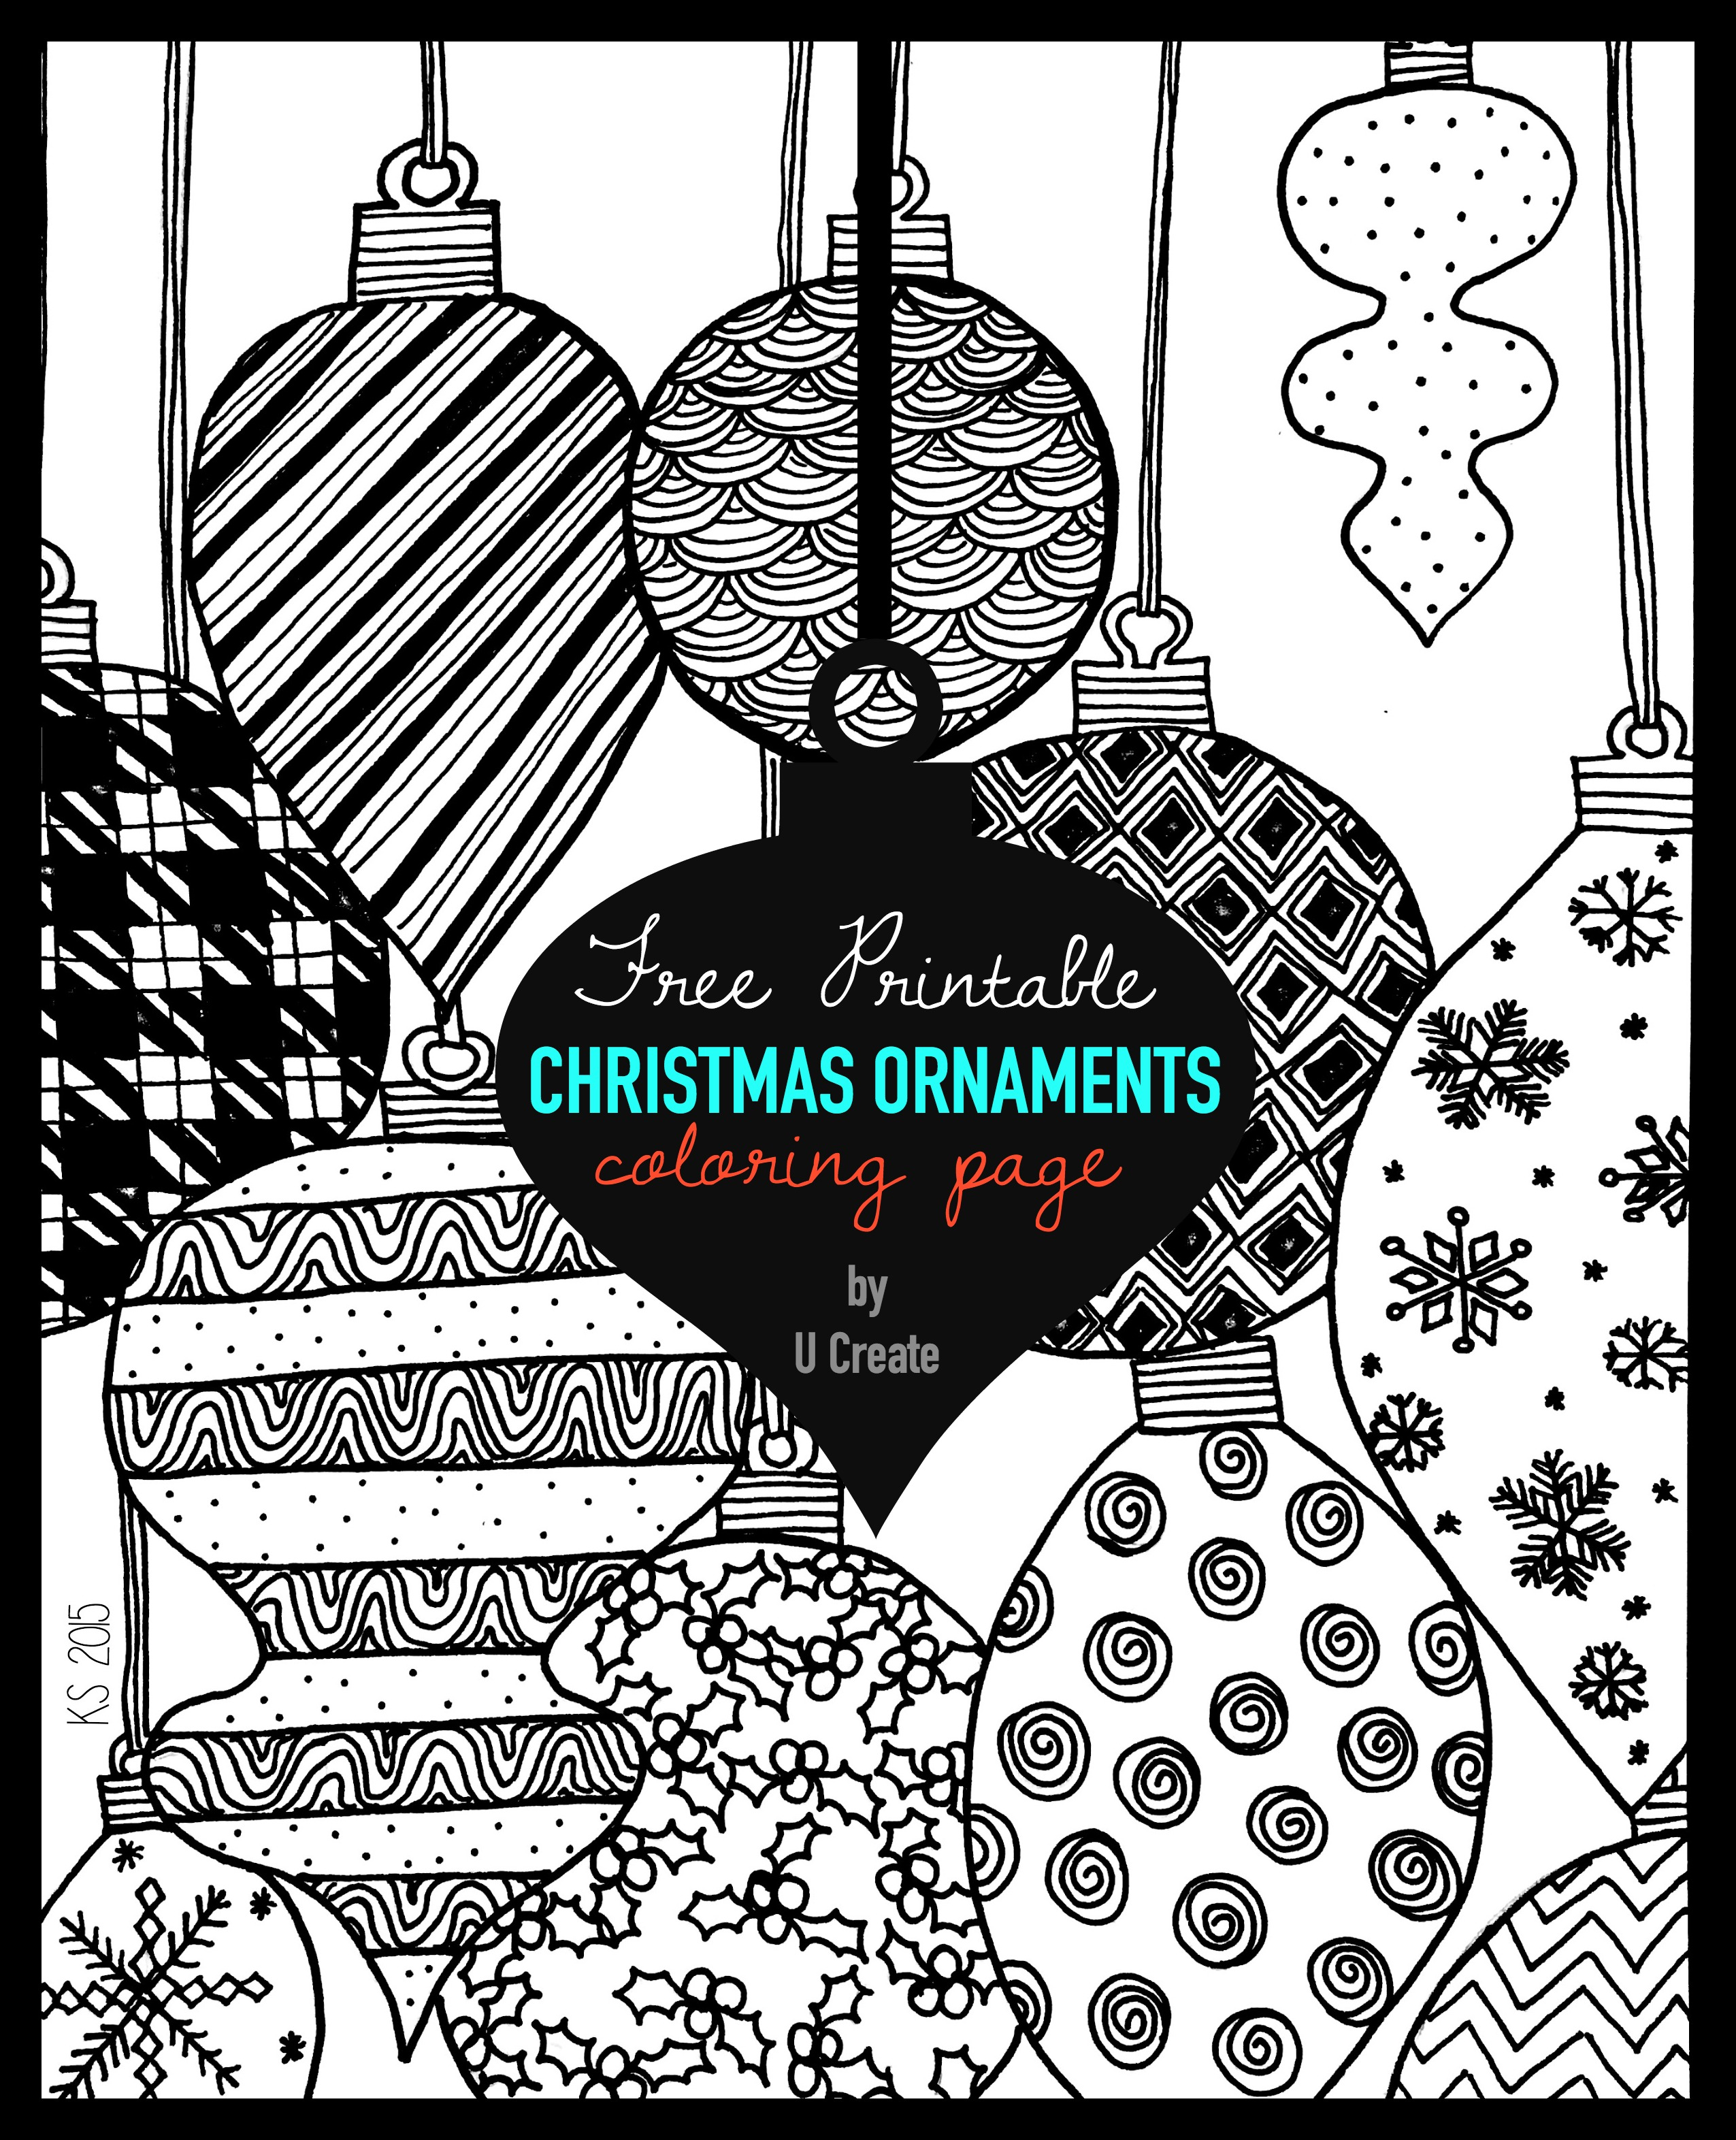 Christmas Ornament Coloring Sheet With Ornaments Adult Page U Create